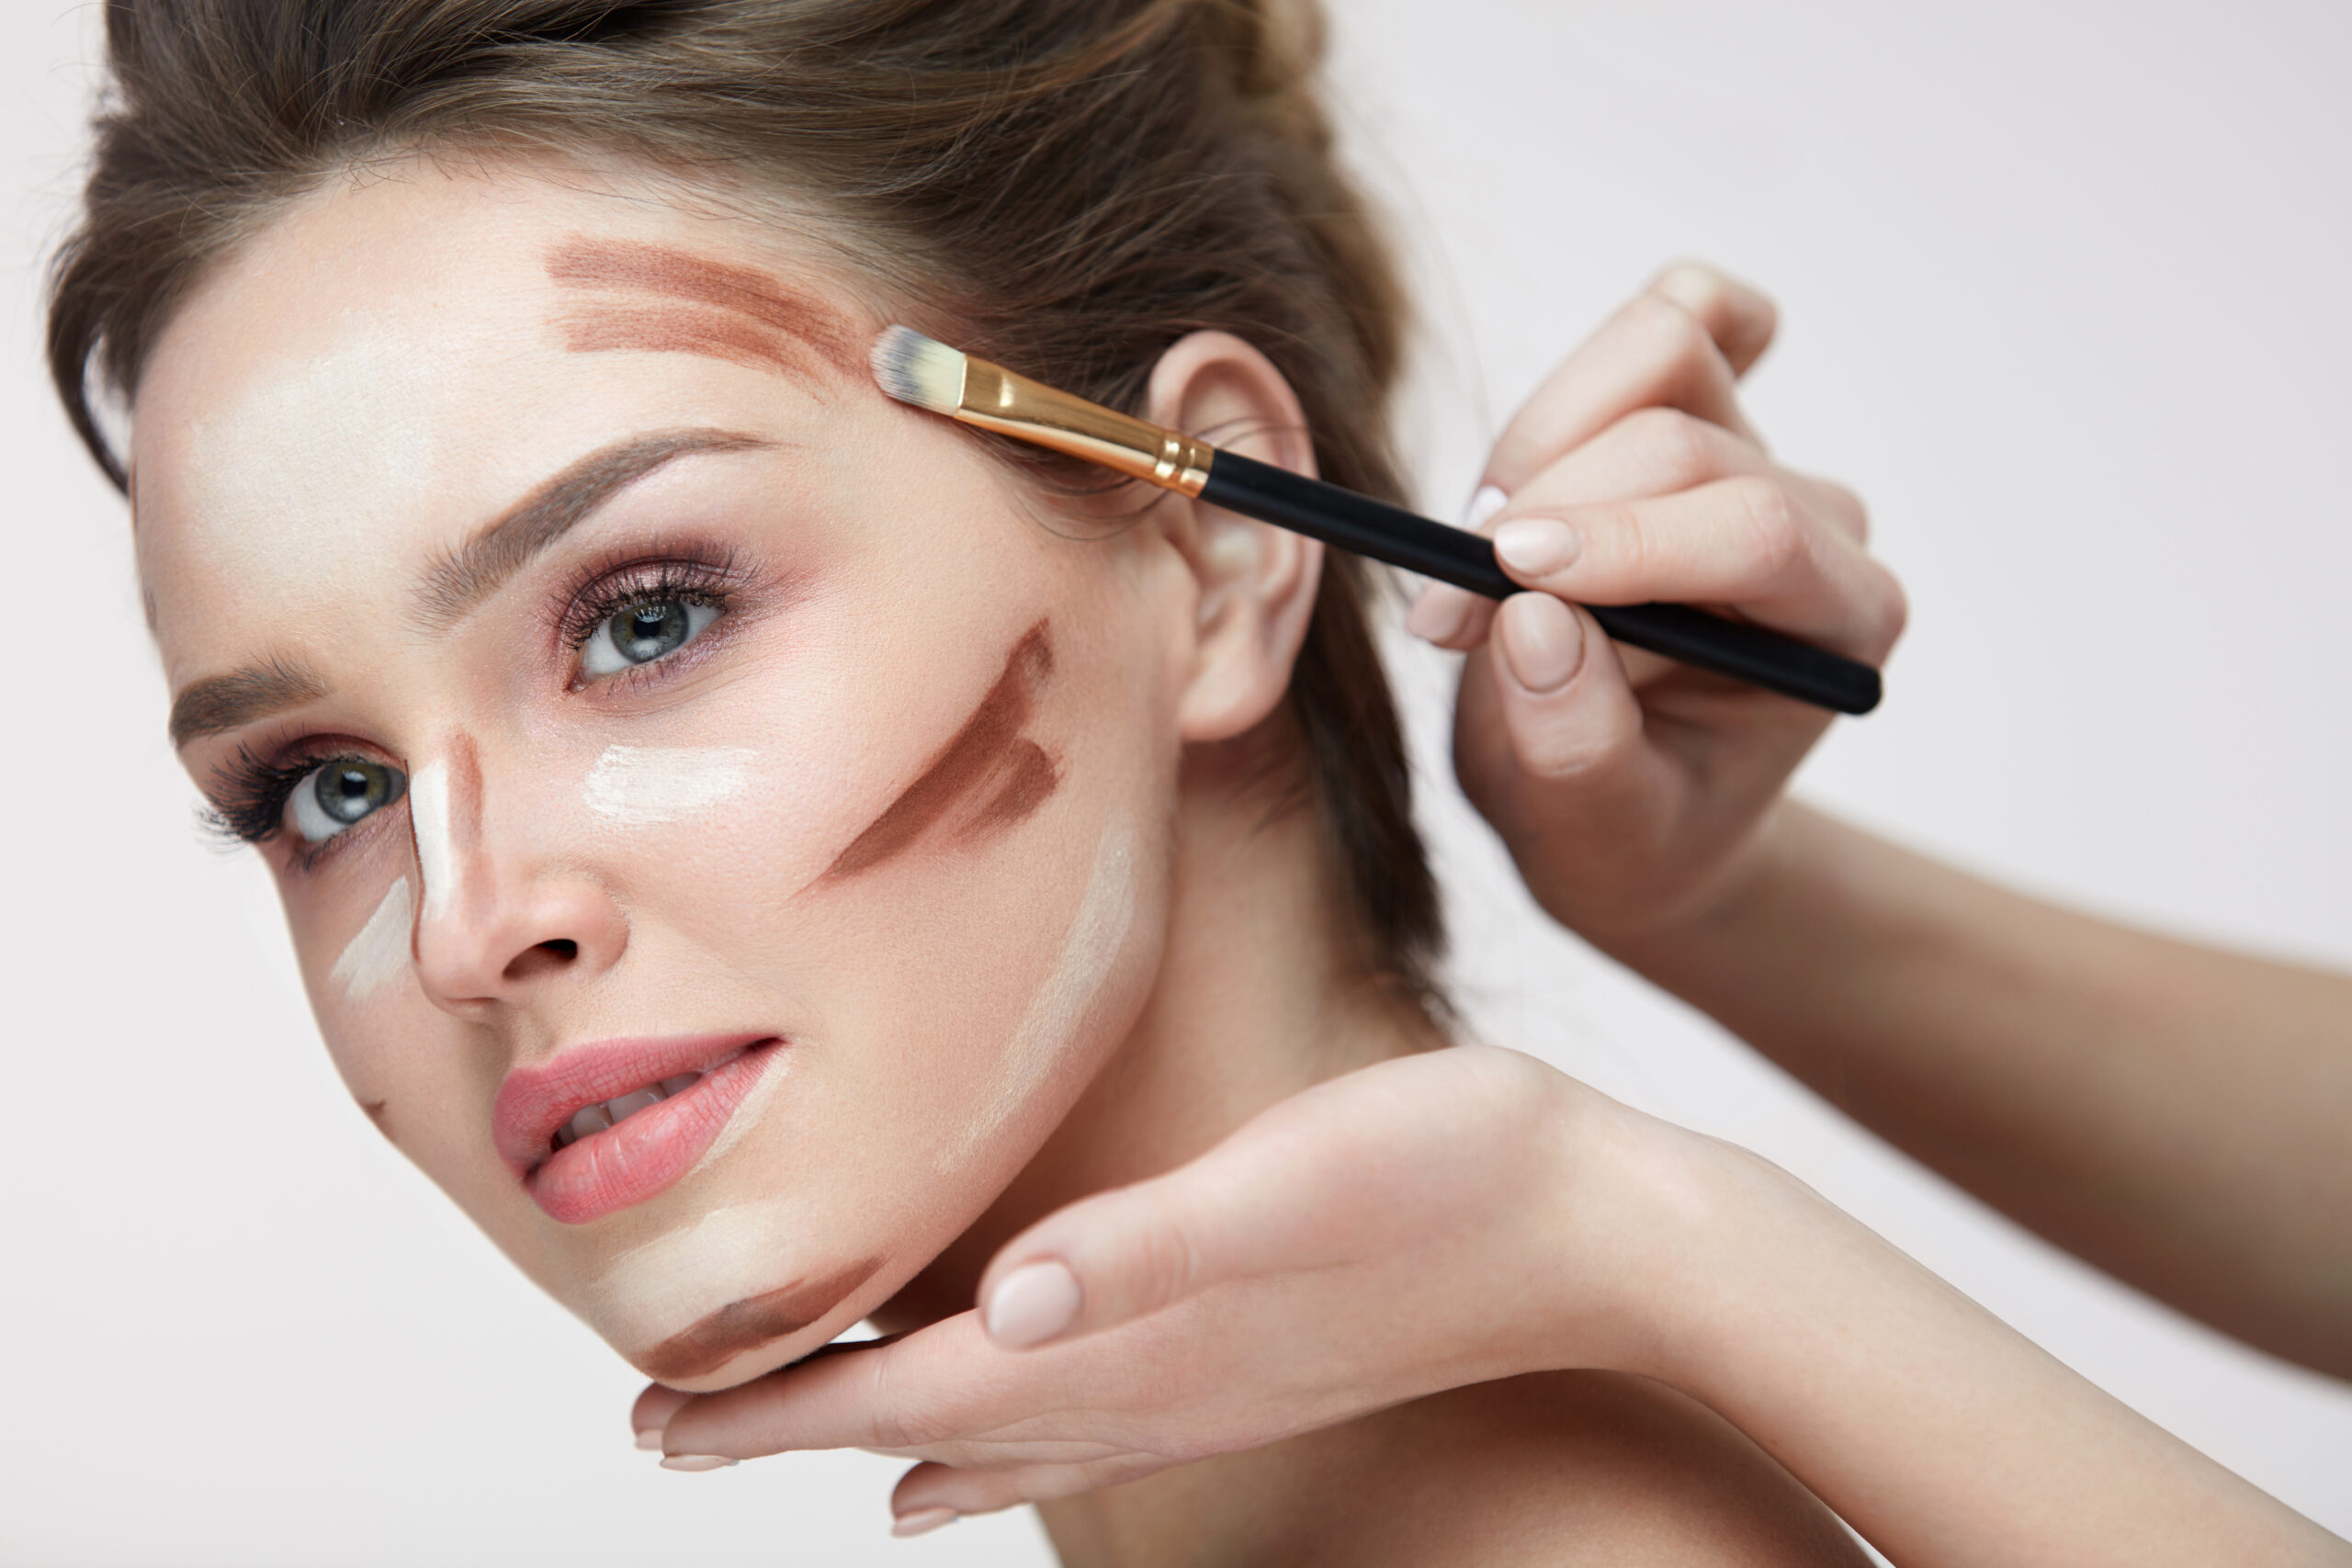 How effective is Botox for jawline contouring?